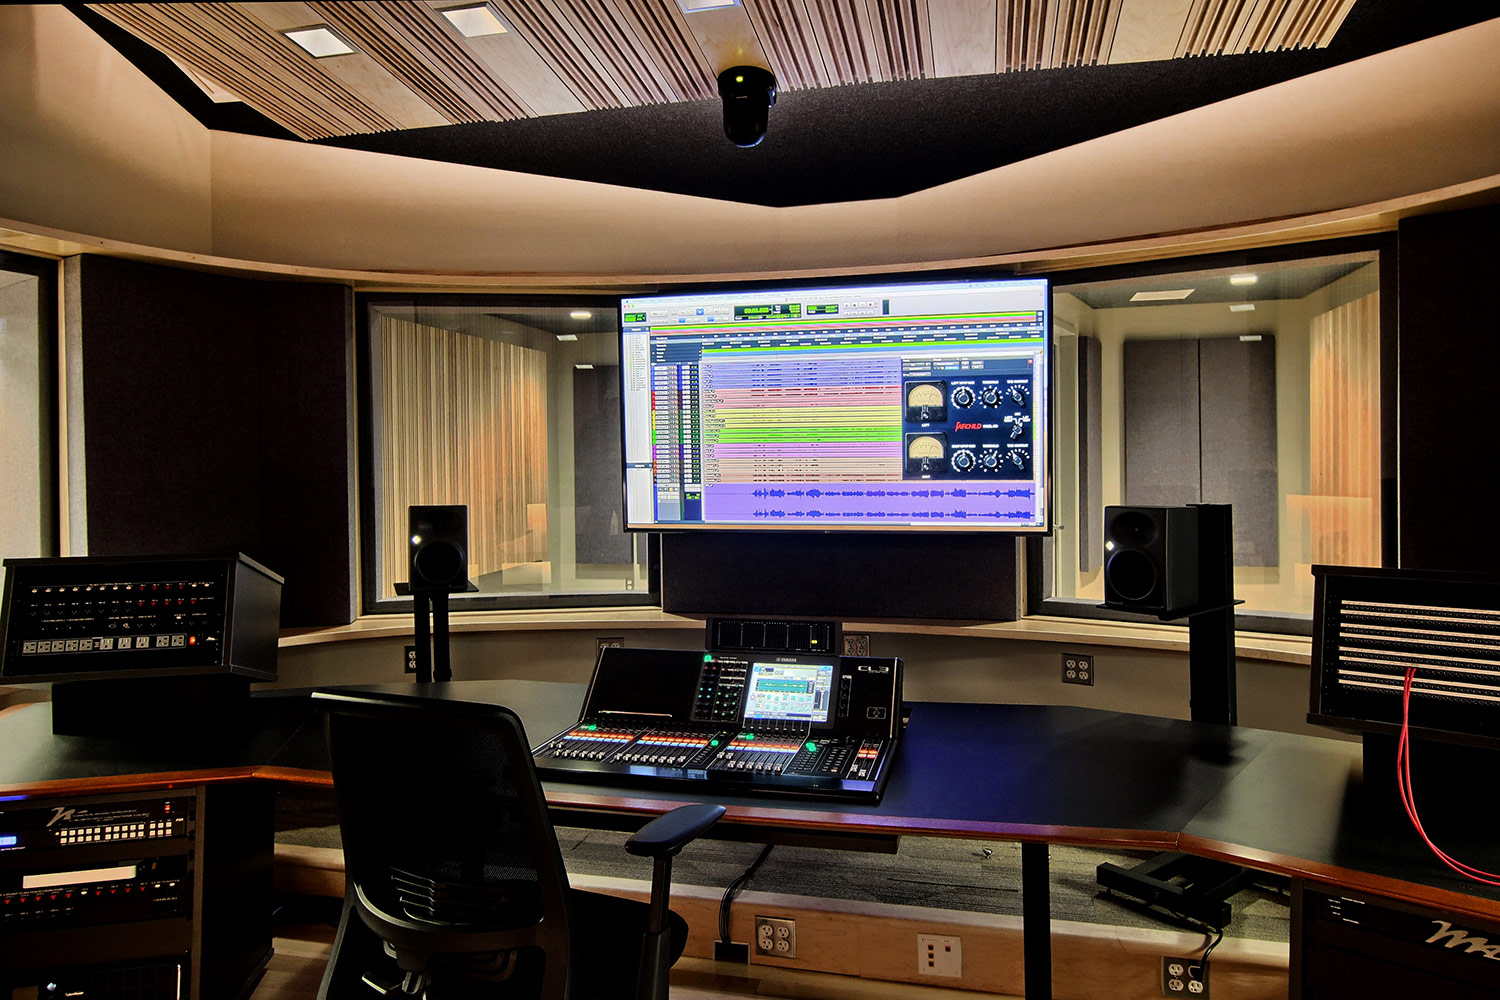 Interlochen has recently completed their new complex. A key component of the new complex is a state-of-the-art recording/teaching studio complex developed by WSDG.